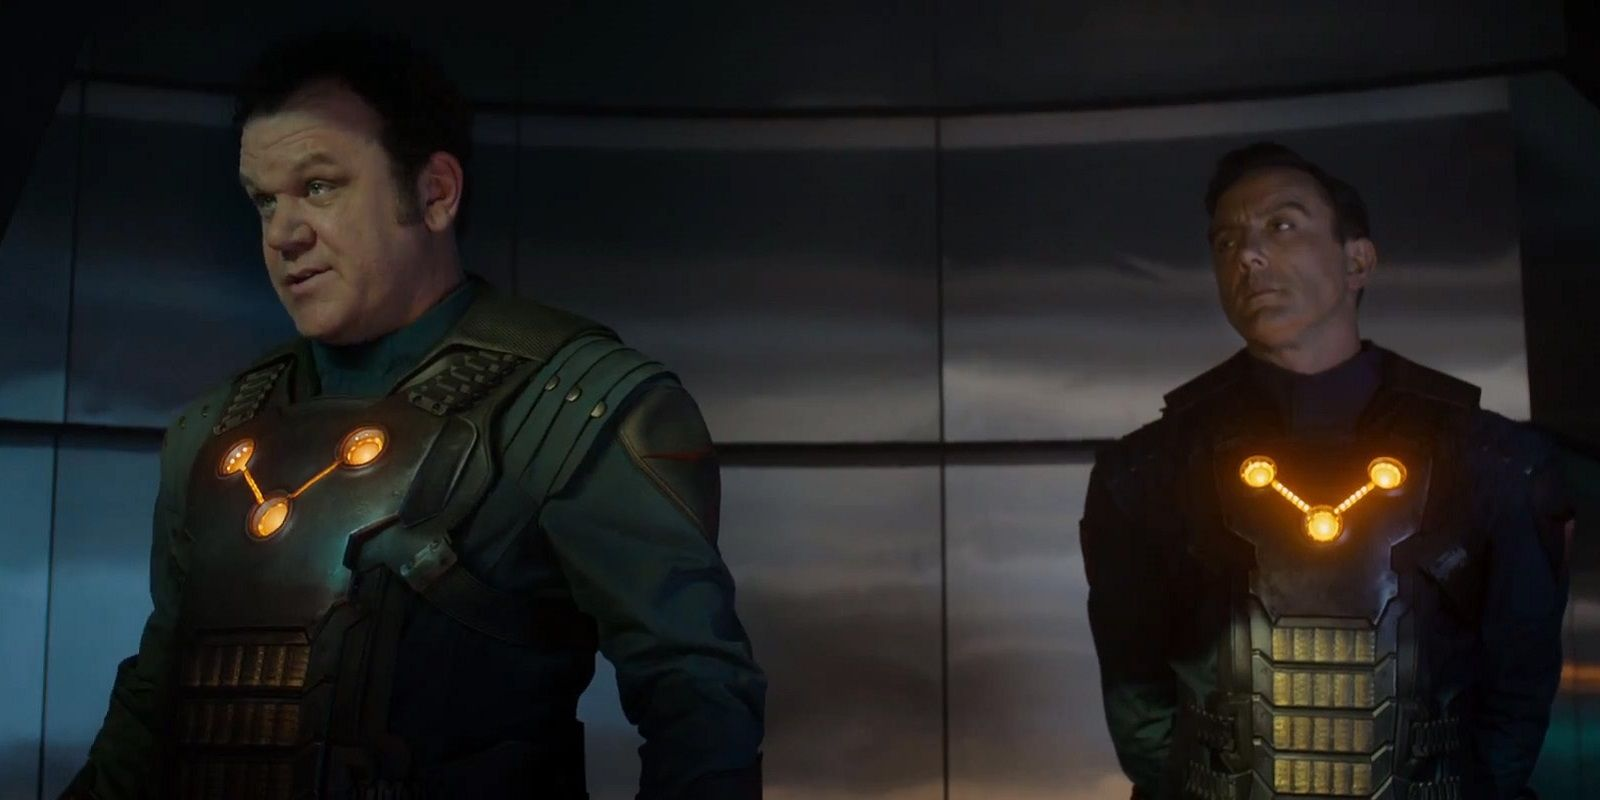 When MCU replaced Nova Corps by an unrecognizable army in Guardians of the Galaxy